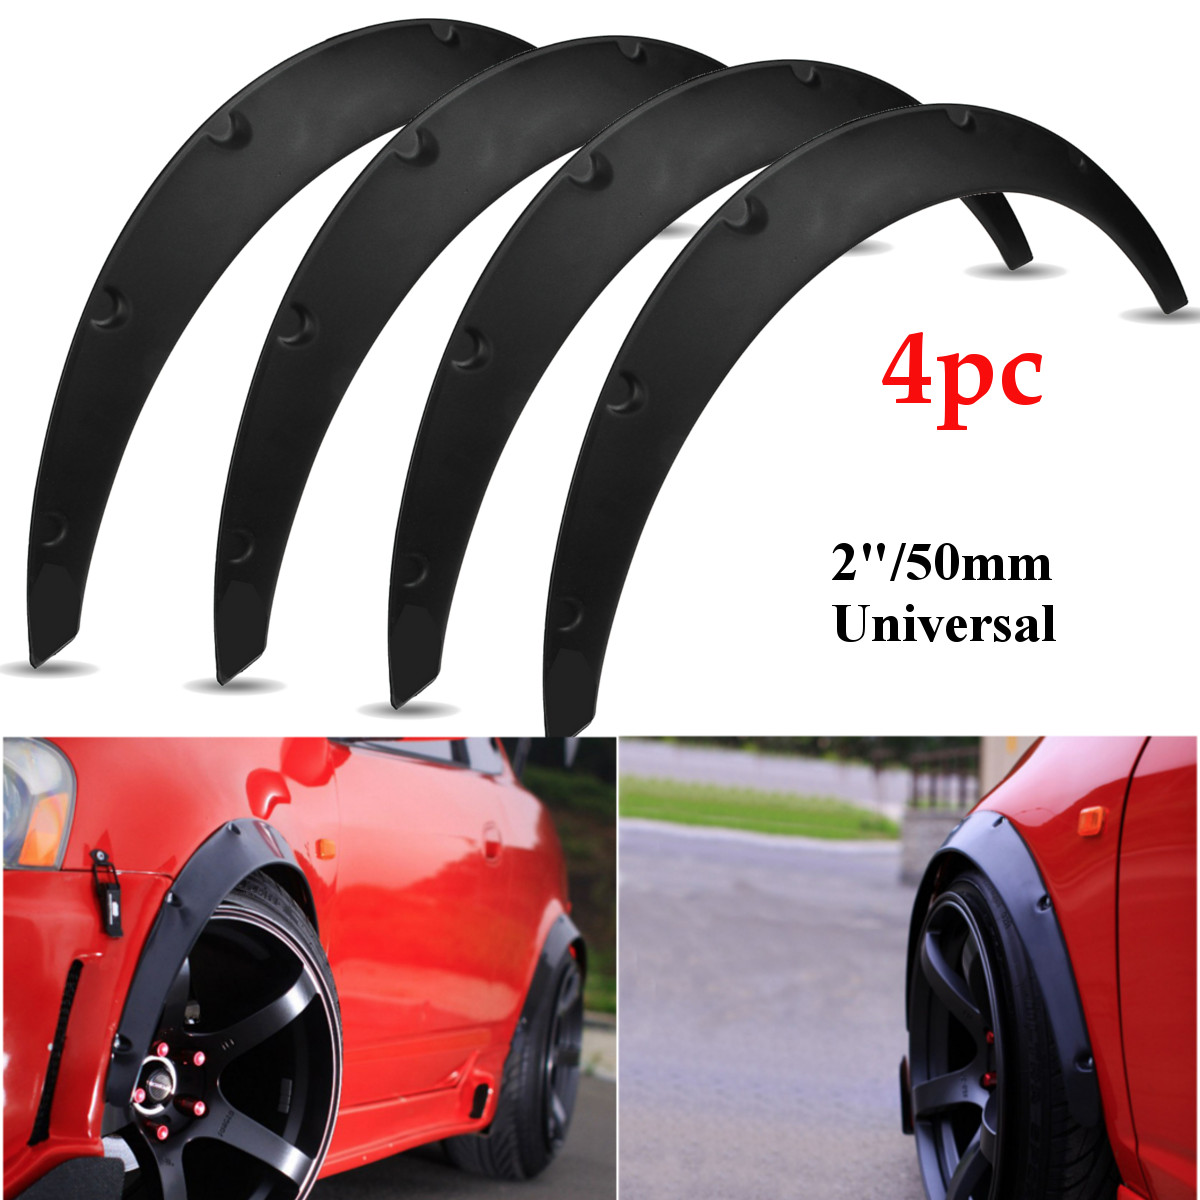 4Pcs 2inch Universal Flexible Car Mudguards Mud Splash Guards Mud Flaps Fender Flares Extra Wide Body